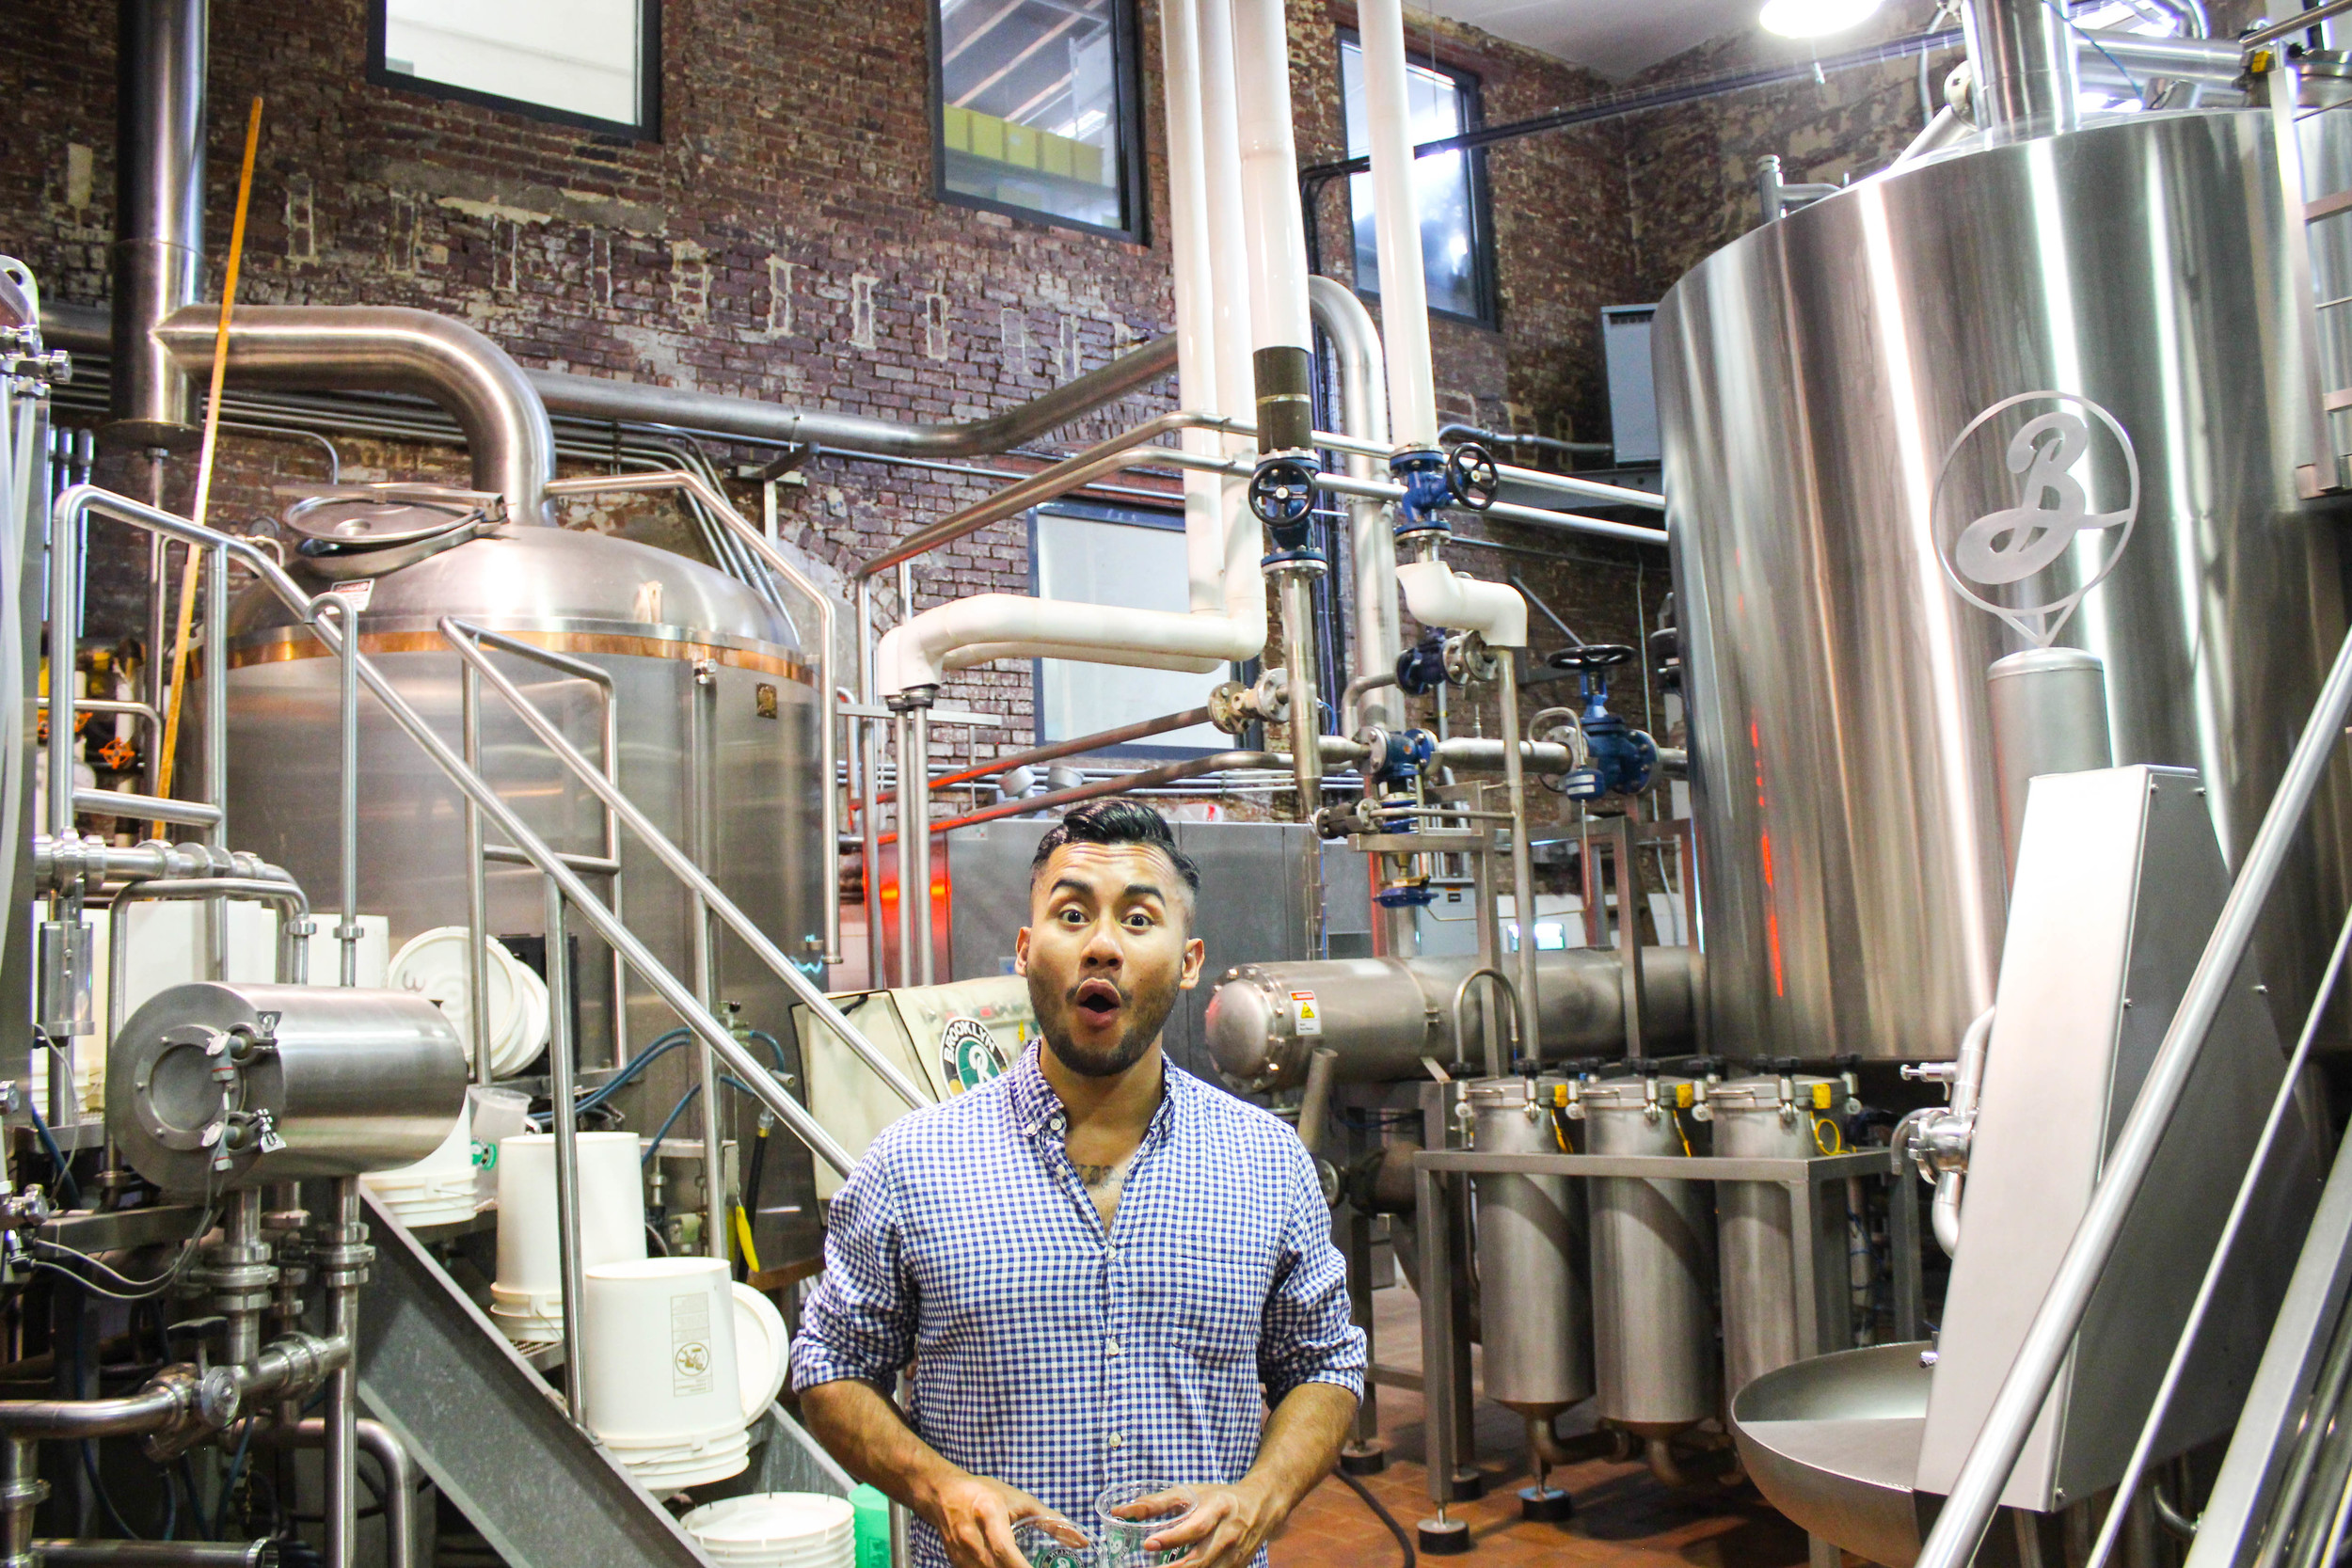 Brewing equipment at Brooklyn Brewery